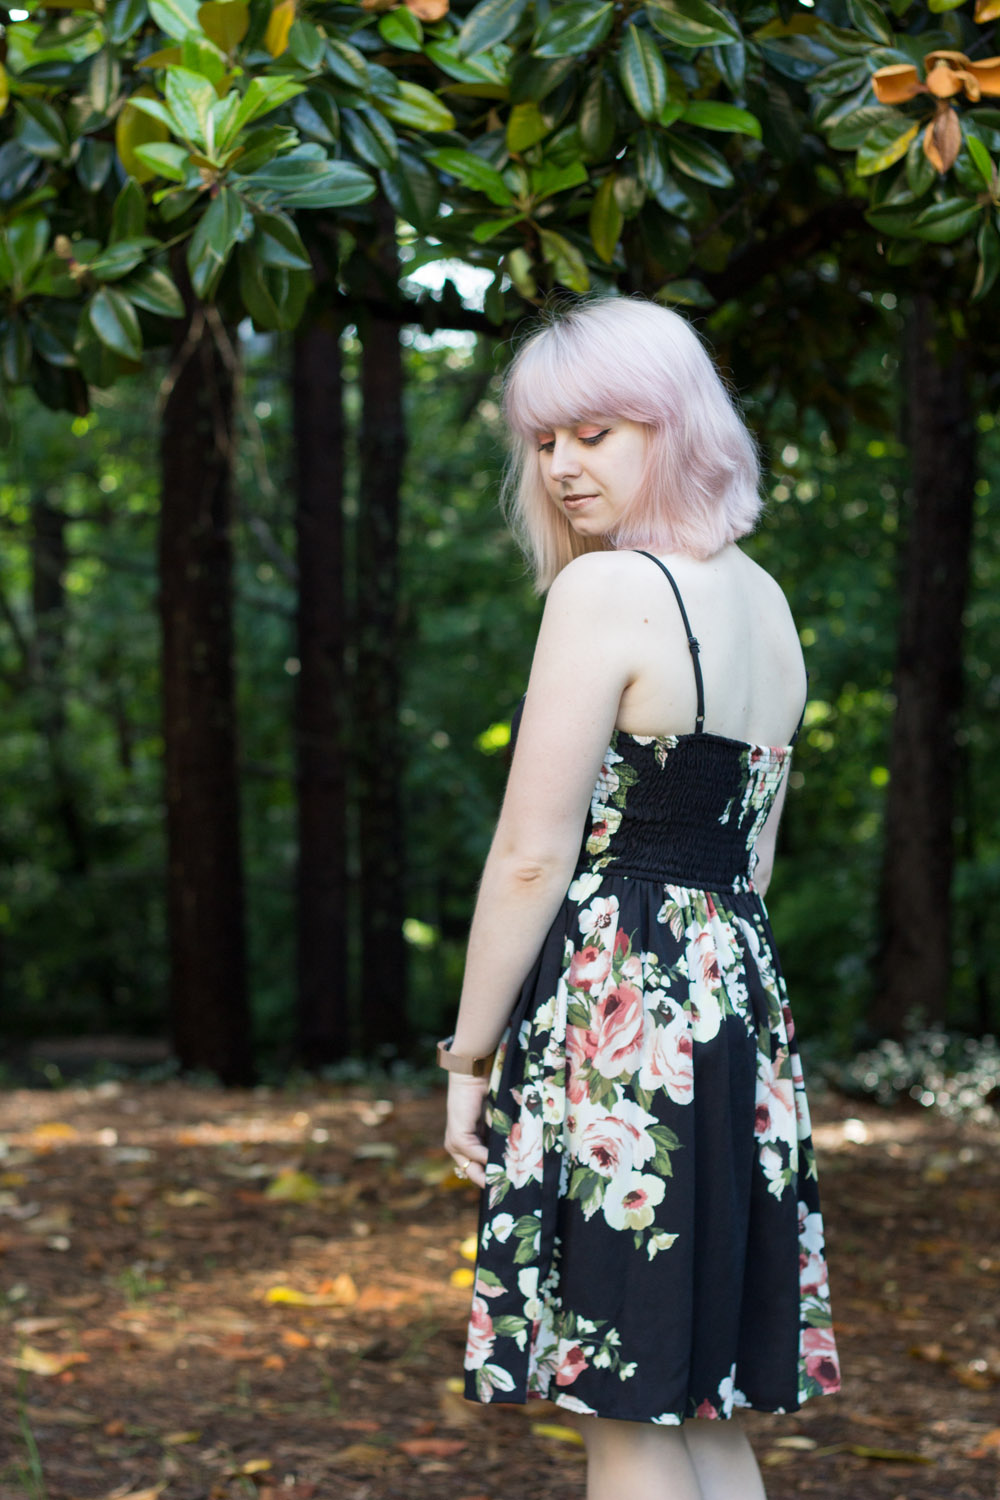 Black Floral Target Spaghetti Strap Dress with Pink Hair